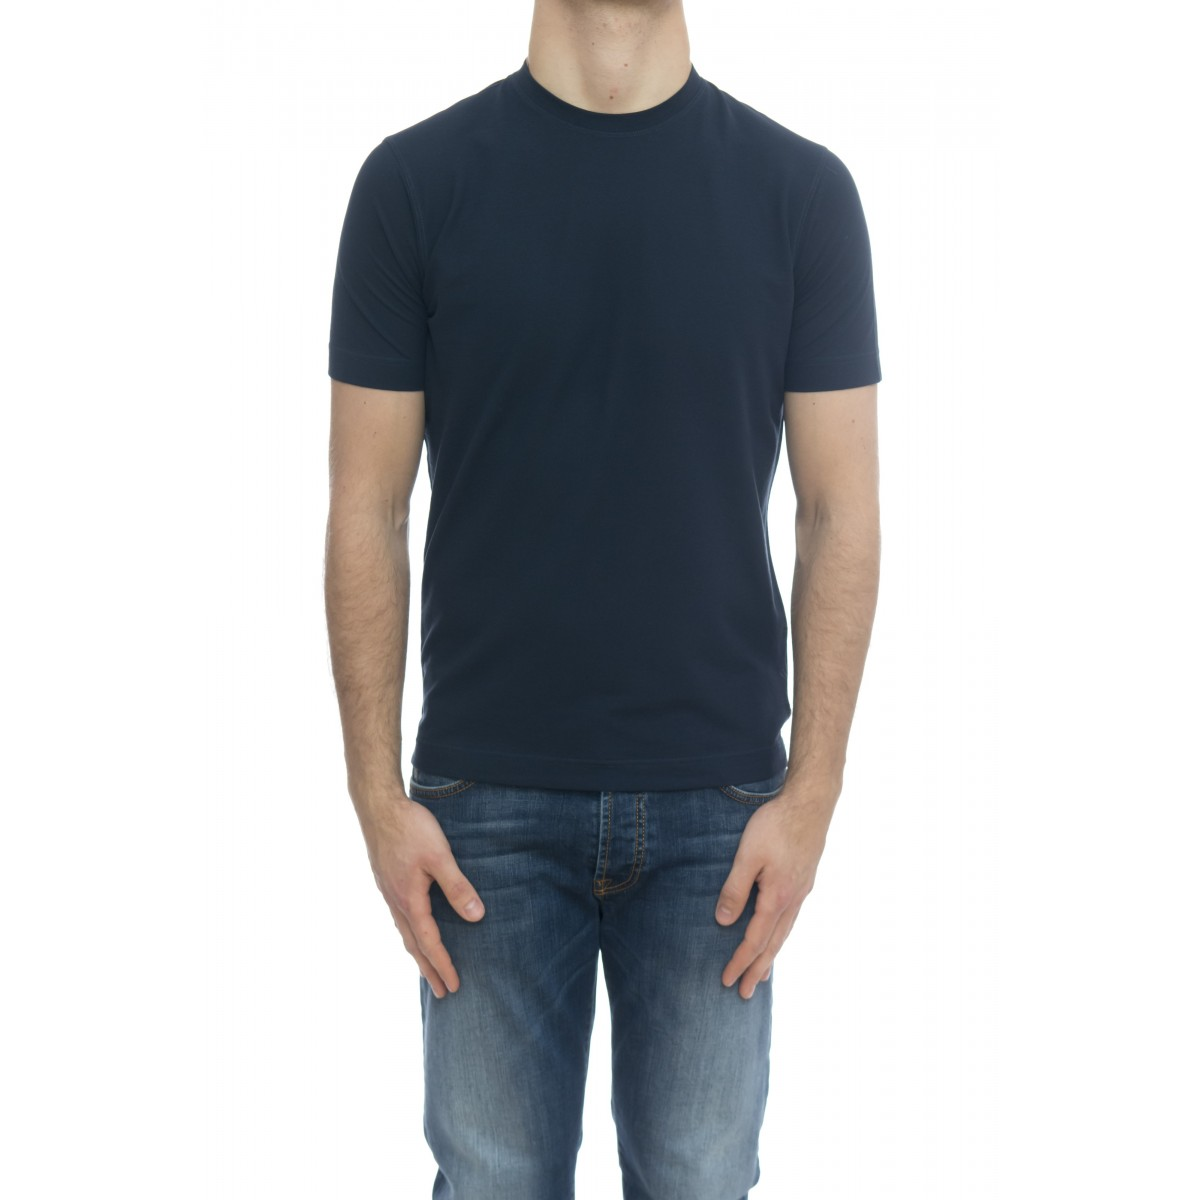 T-shirt - 811821 z0380 t-shirt mc ice cotton